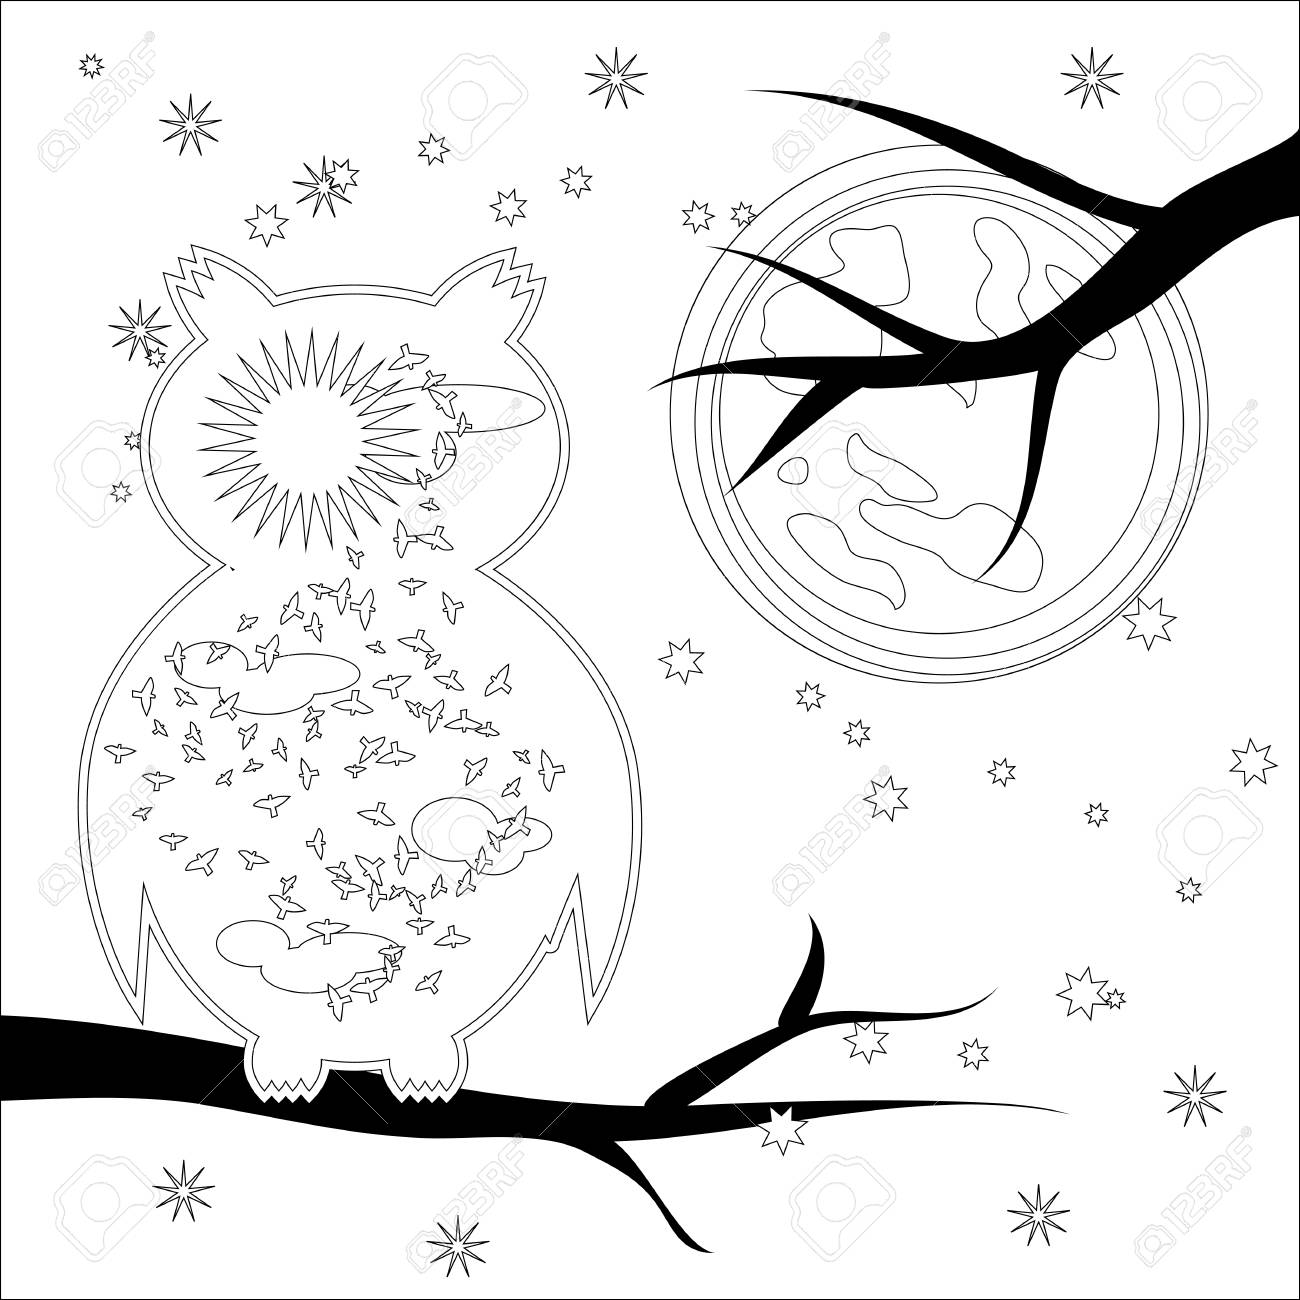 Coloring Page With Symbol Moon Sun Owl Coloring Book For Adult